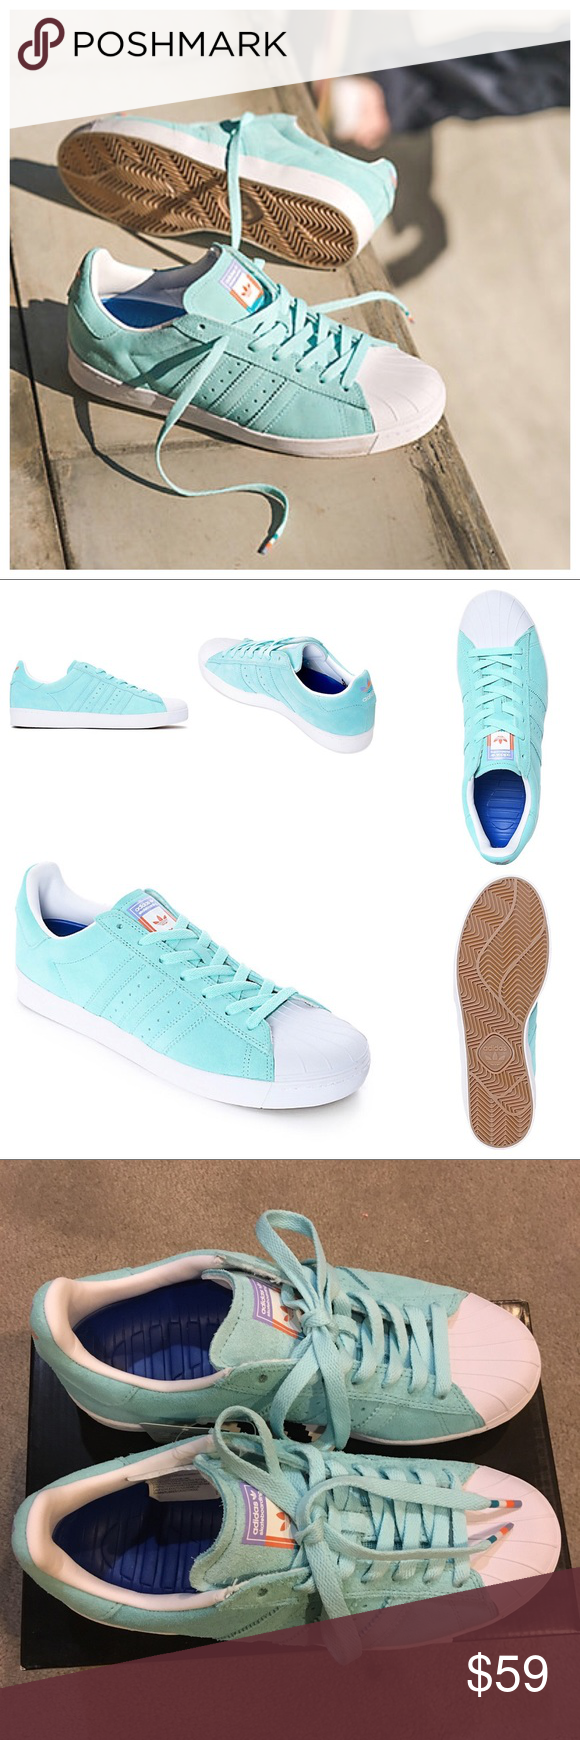 9c24889a5f45 Adidas Superstar Pastel Blue Adidas Superstar Vulc ADV Pastel Blue Shoes  Unisex sizing  4.5 M